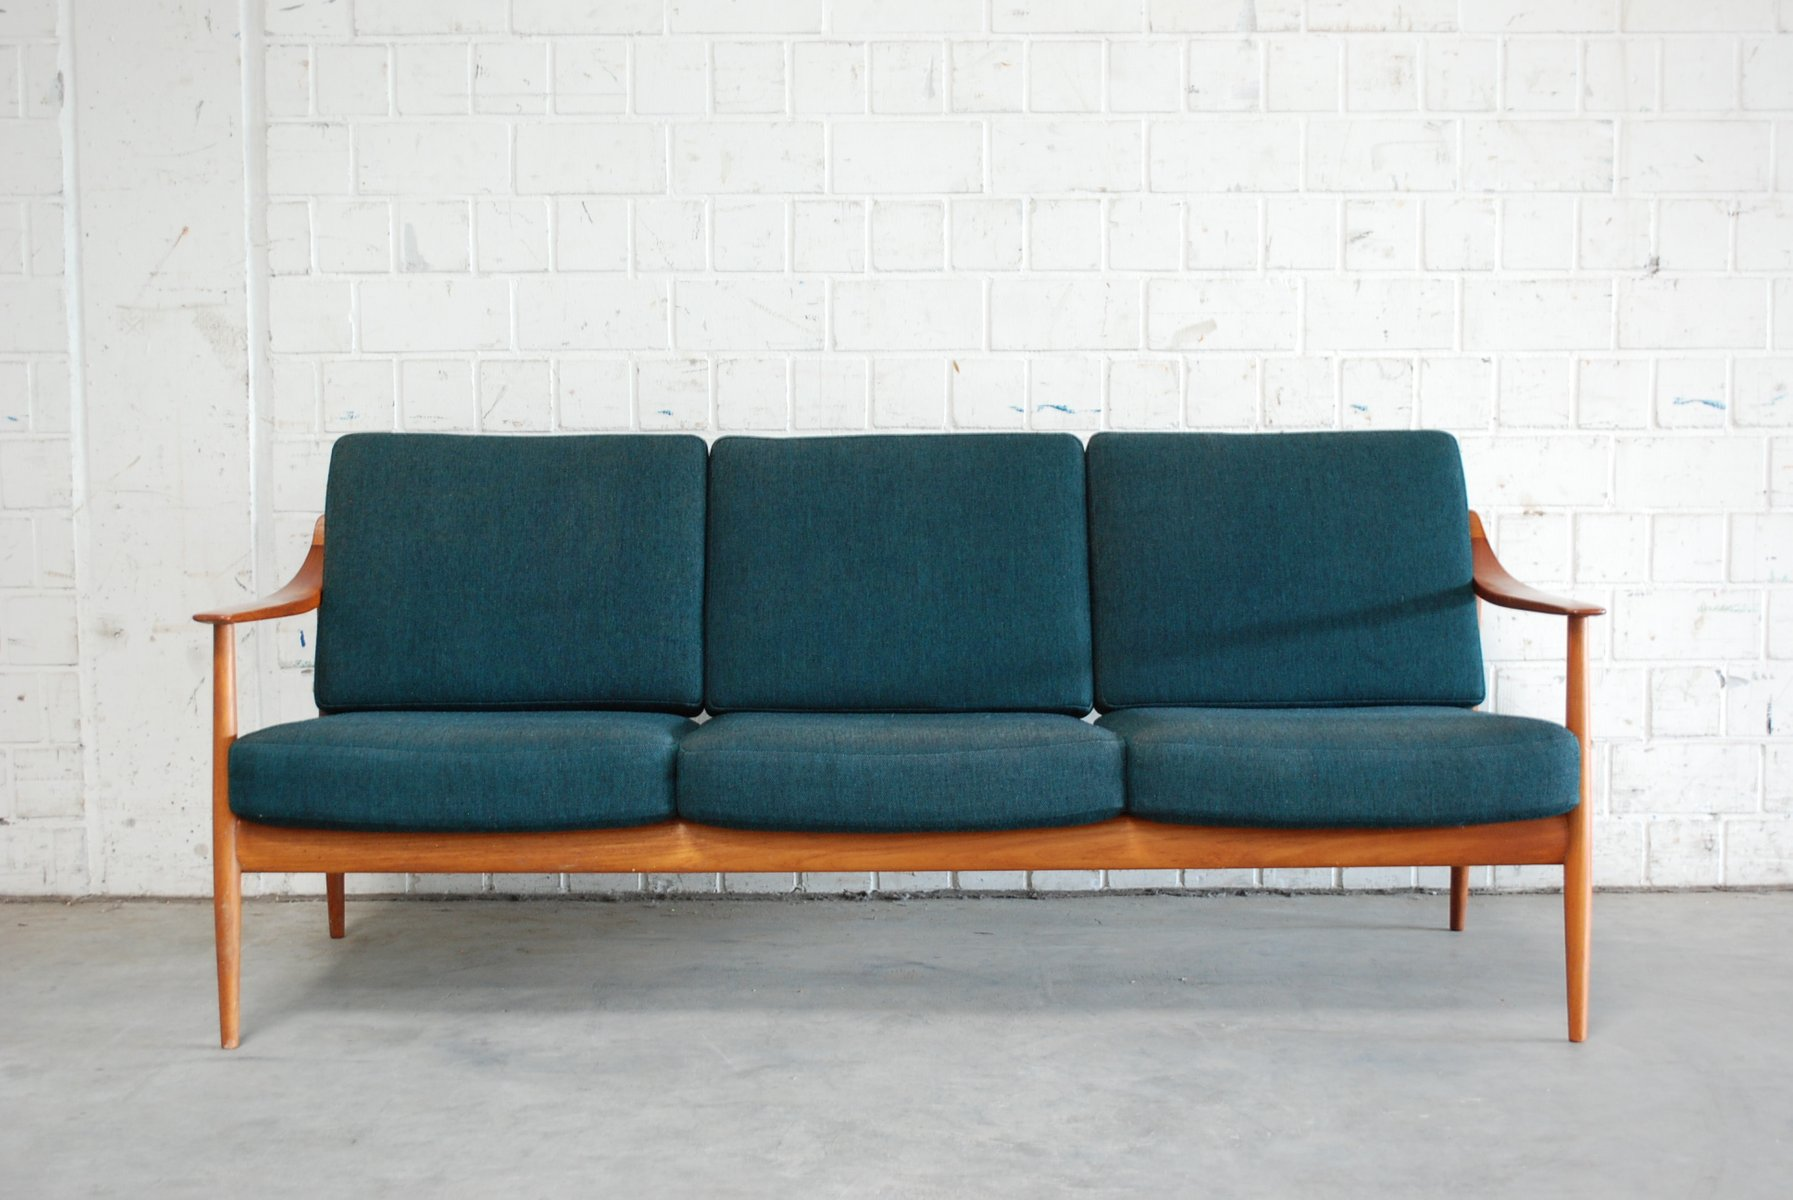 knoll sofas sale 100 images knoll isabelle sofa sale. Black Bedroom Furniture Sets. Home Design Ideas